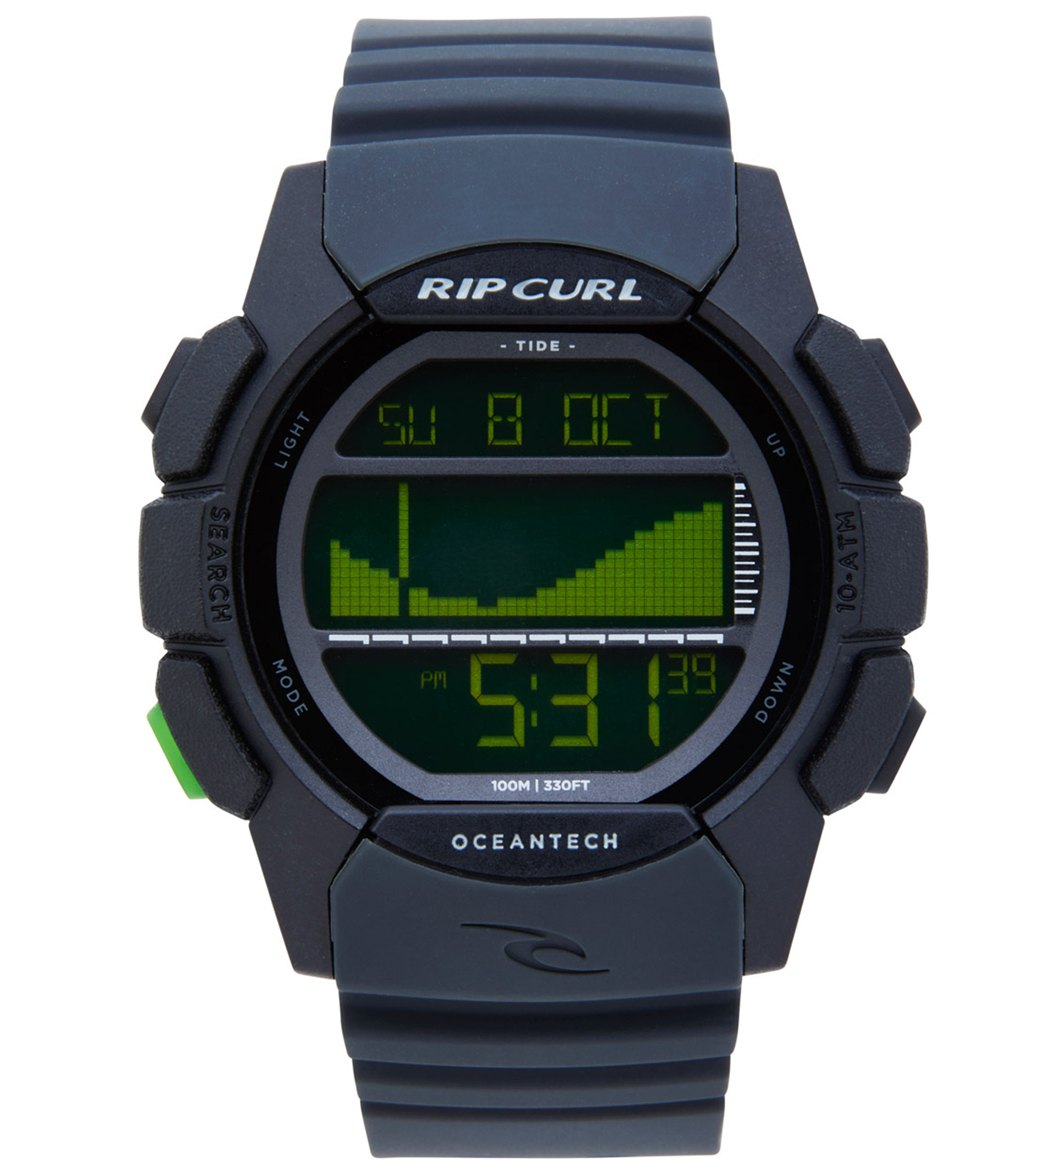 Rip Curl Drifter Tide Watch at SwimOutlet.com - Free Shipping 3422321a587c